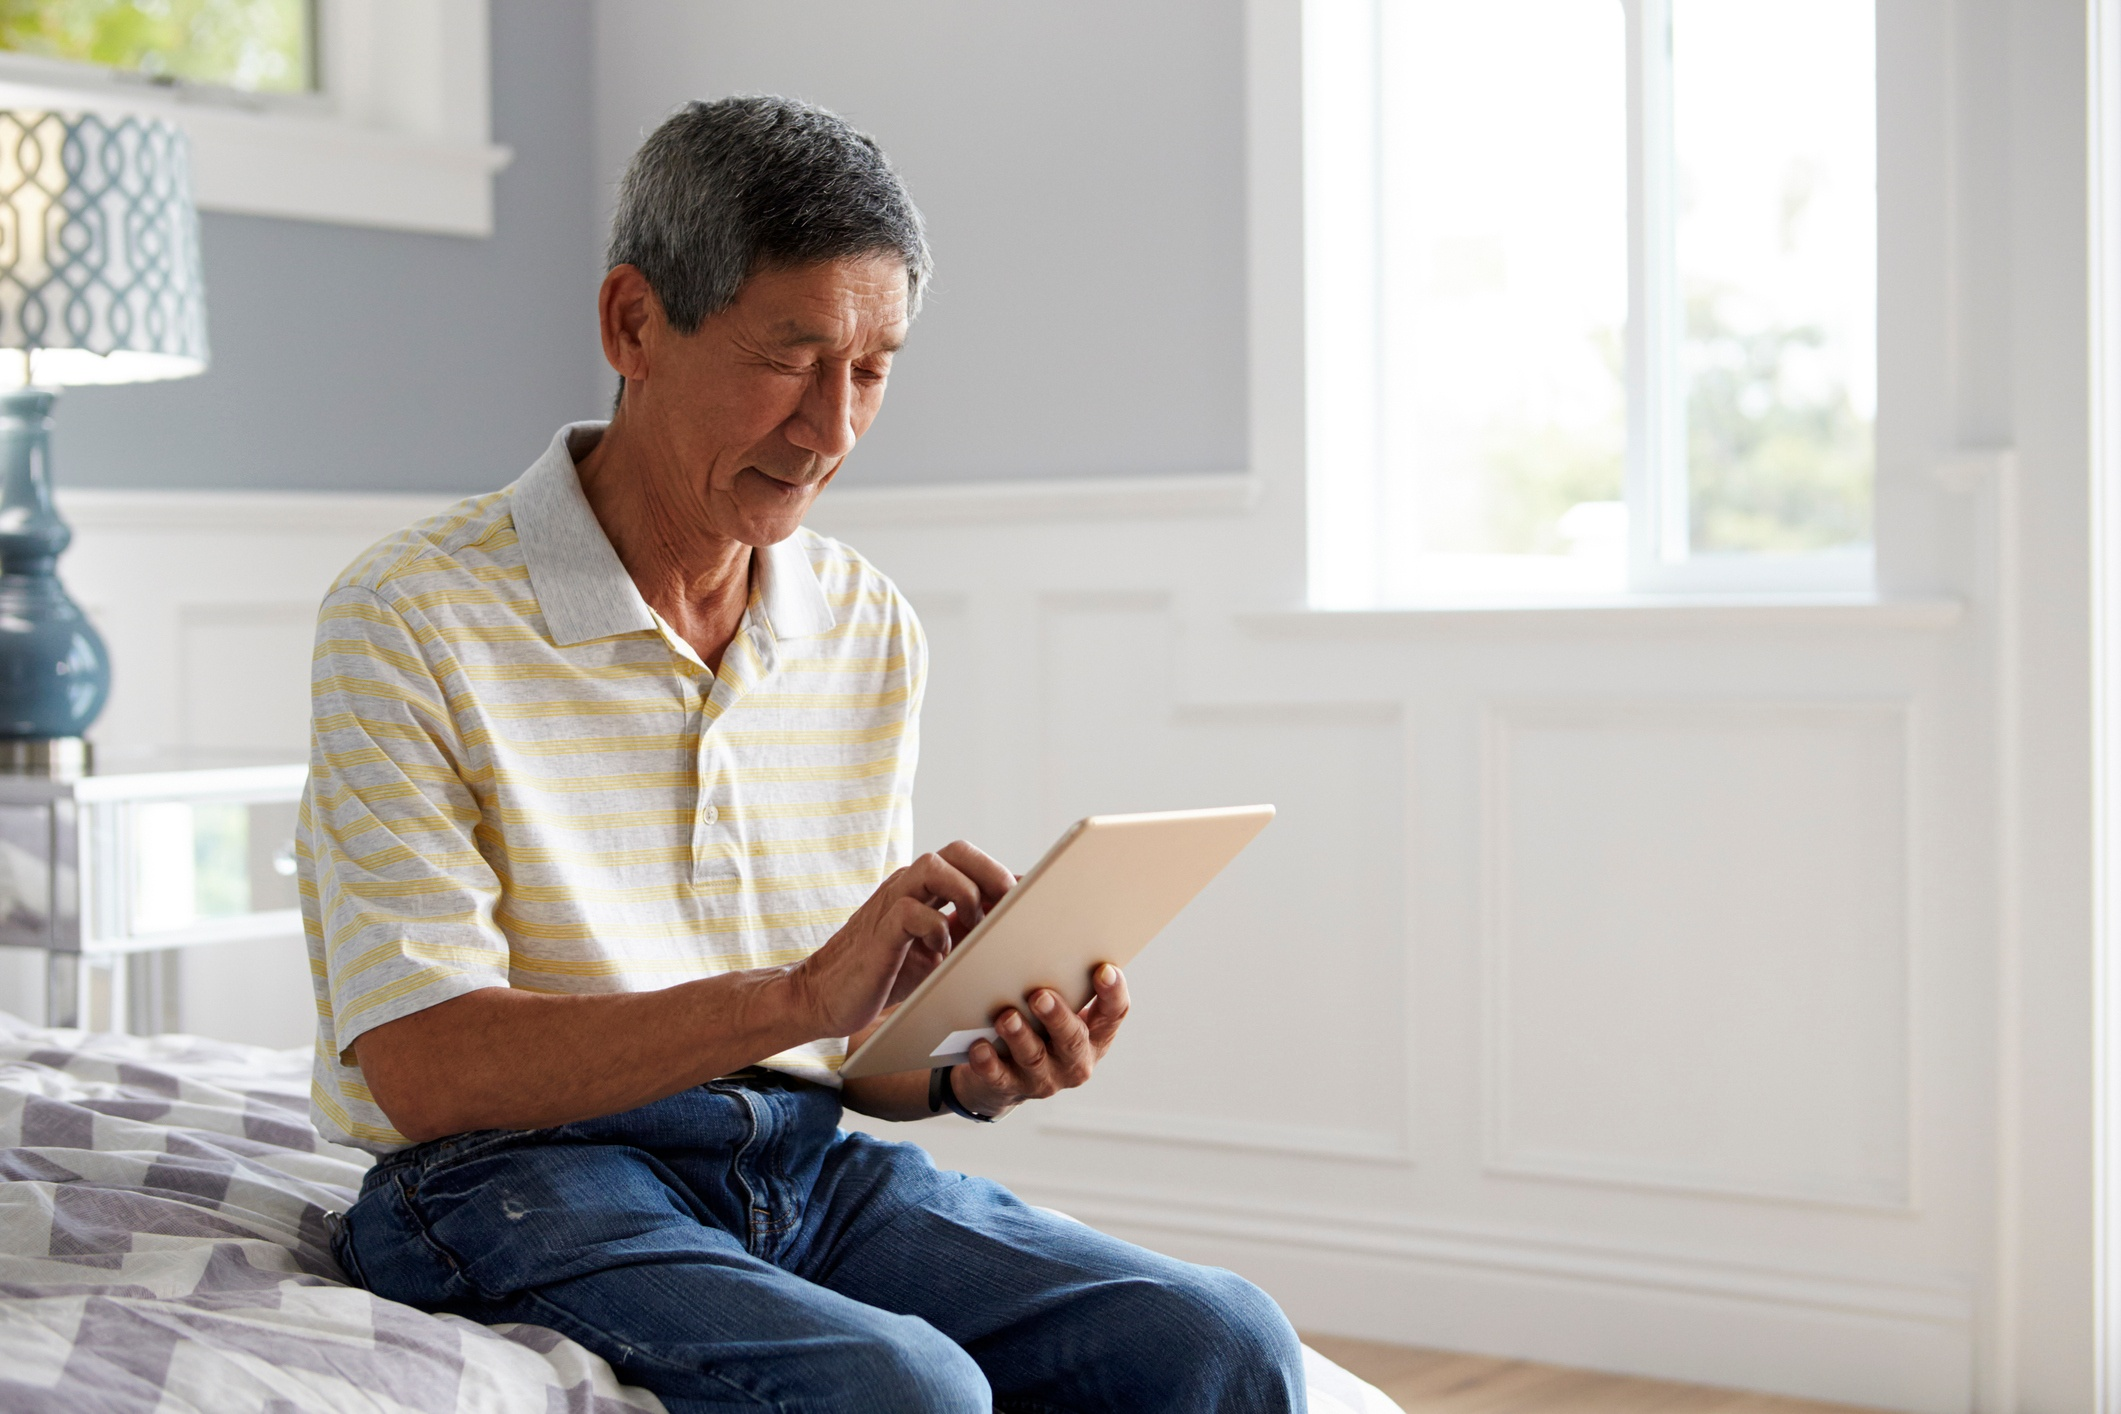 man-at-home-on-tablet.jpg